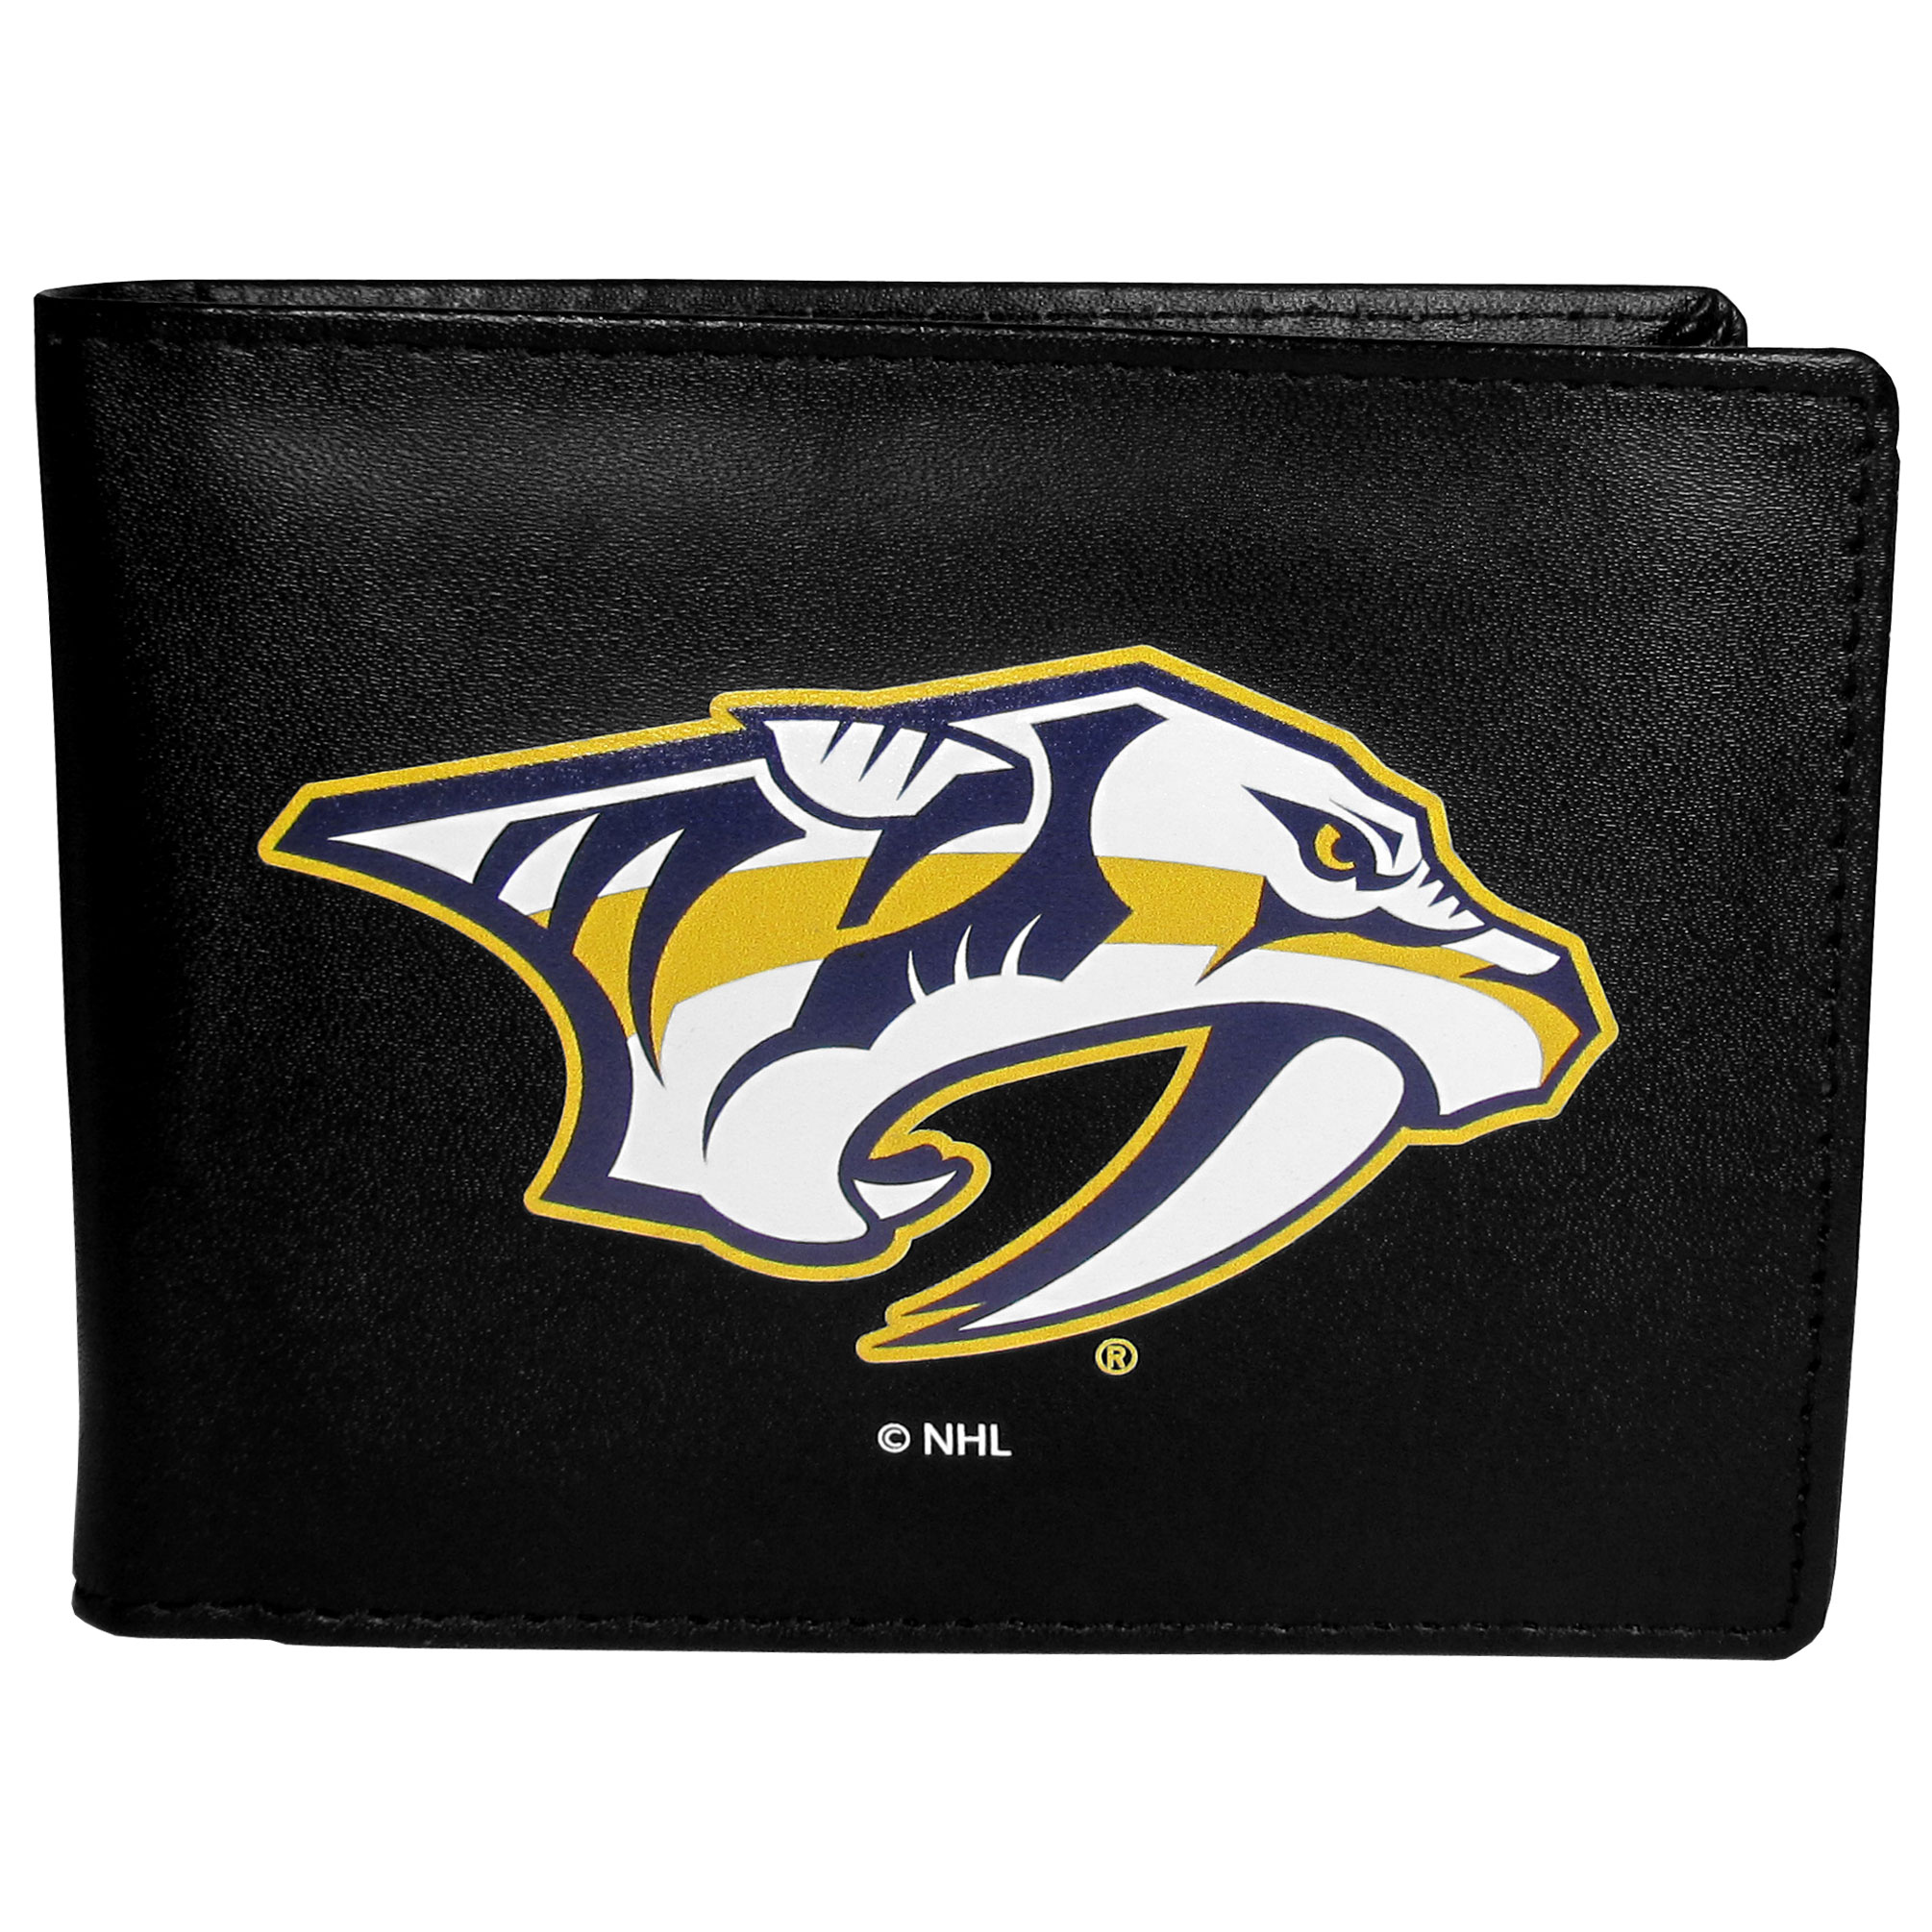 Nashville Predators® Leather Bi-fold Wallet, Large Logo - Our classic fine leather bi-fold wallet is meticulously crafted with genuine leather that will age beautifully so you will have a quality wallet for years to come. The wallet opens to a large, billfold pocket and numerous credit card slots and has a convenient windowed ID slot. The front of the wallet features an extra large Nashville Predators® printed logo.